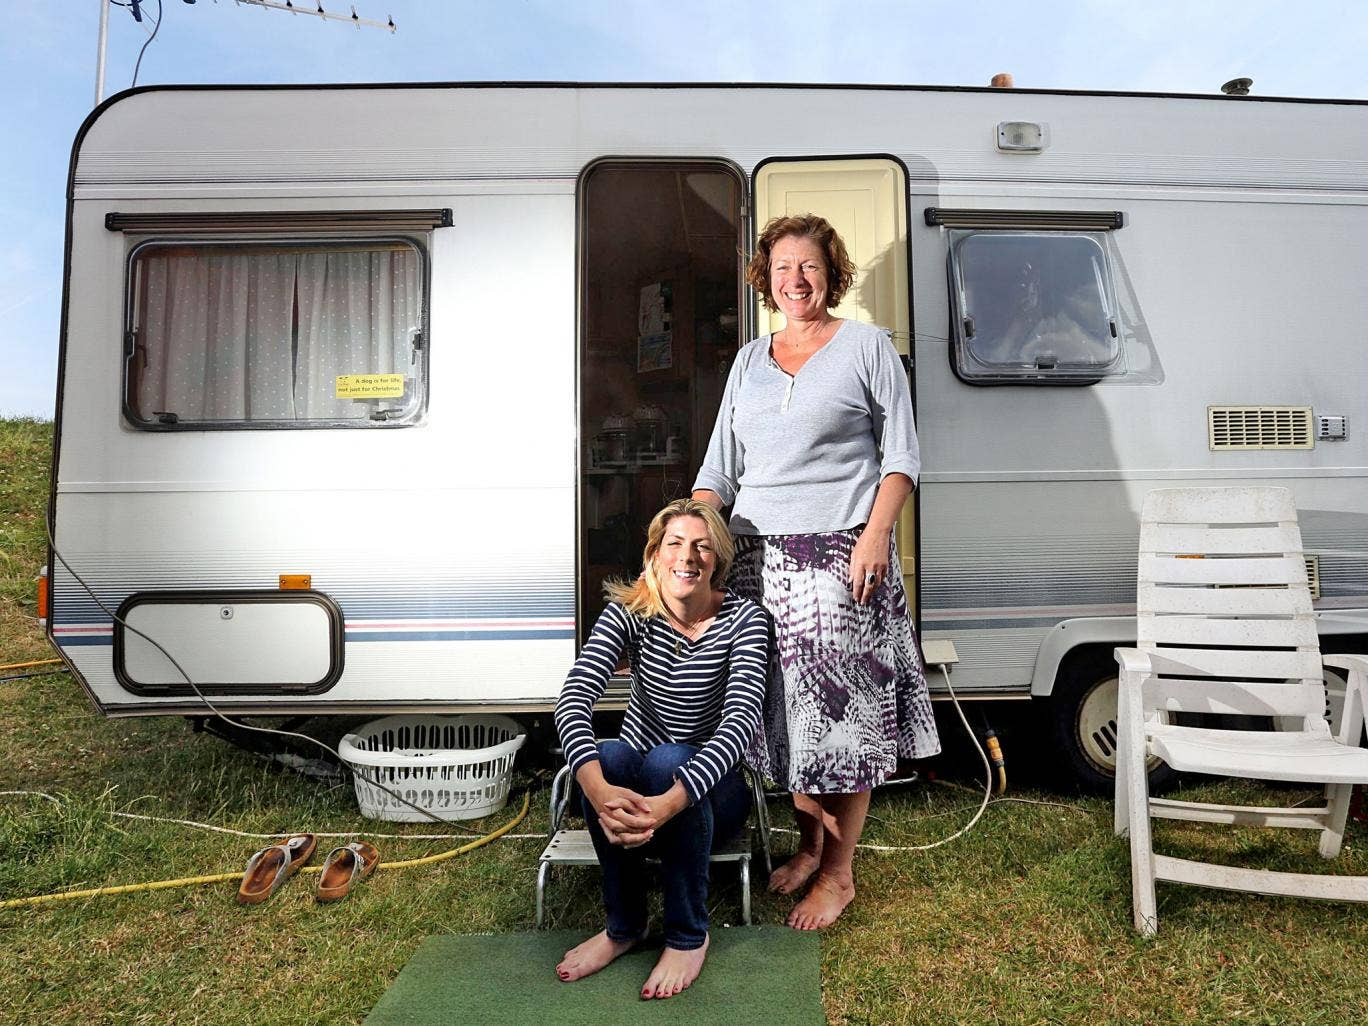 Fairground attraction: Zoah Hedges-Stocks, 23, with her mother Bernice outside their caravan